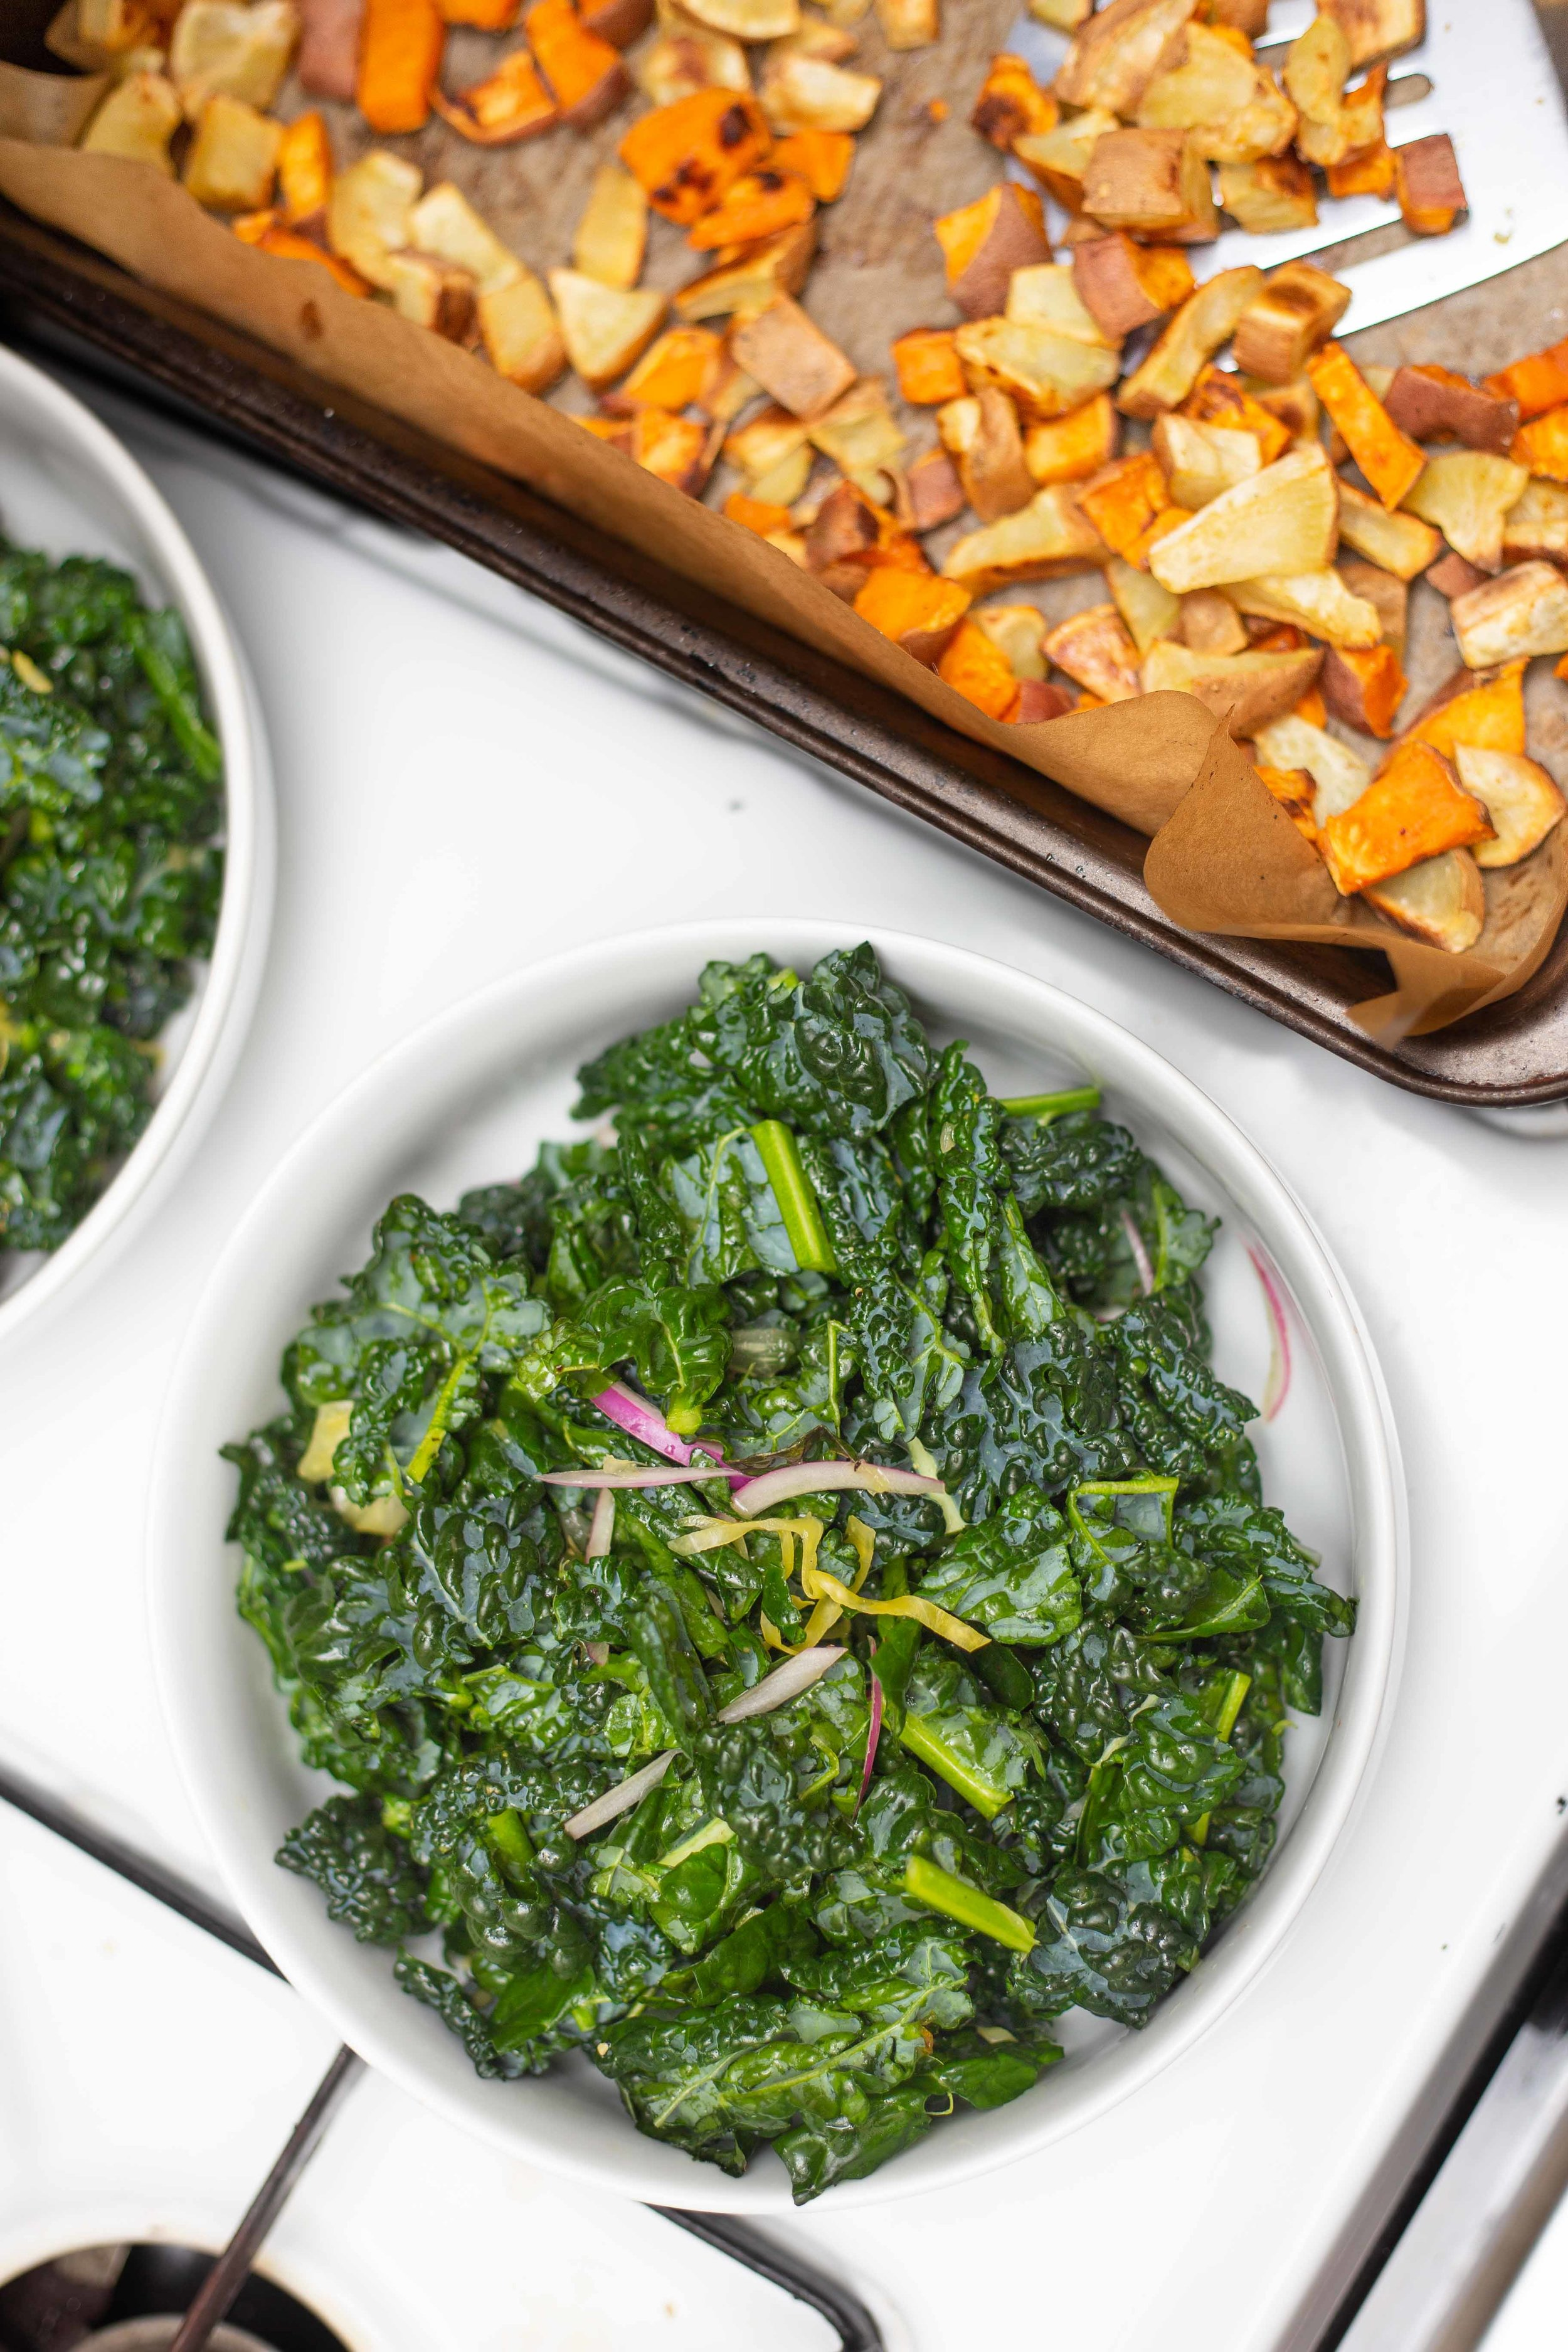 Easy Vegan Kale Salad with Crispy Baked Potatoes and Fermented Sauerkraut